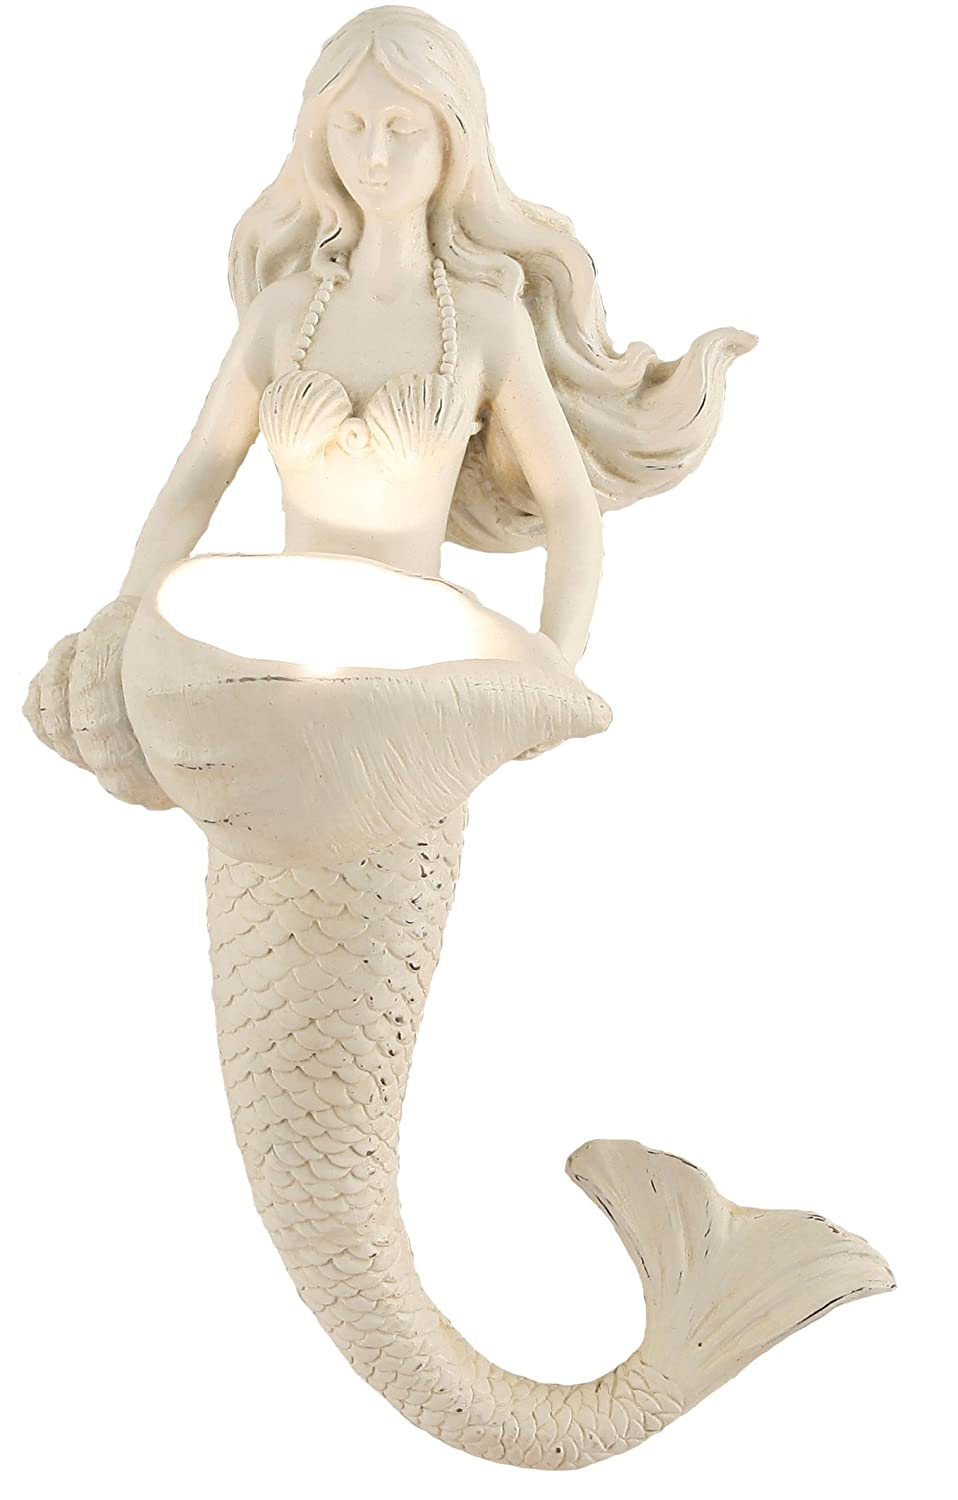 Young's Inc 11617 Resin Mermaid Votive Candle Holder, 11.5-Inch